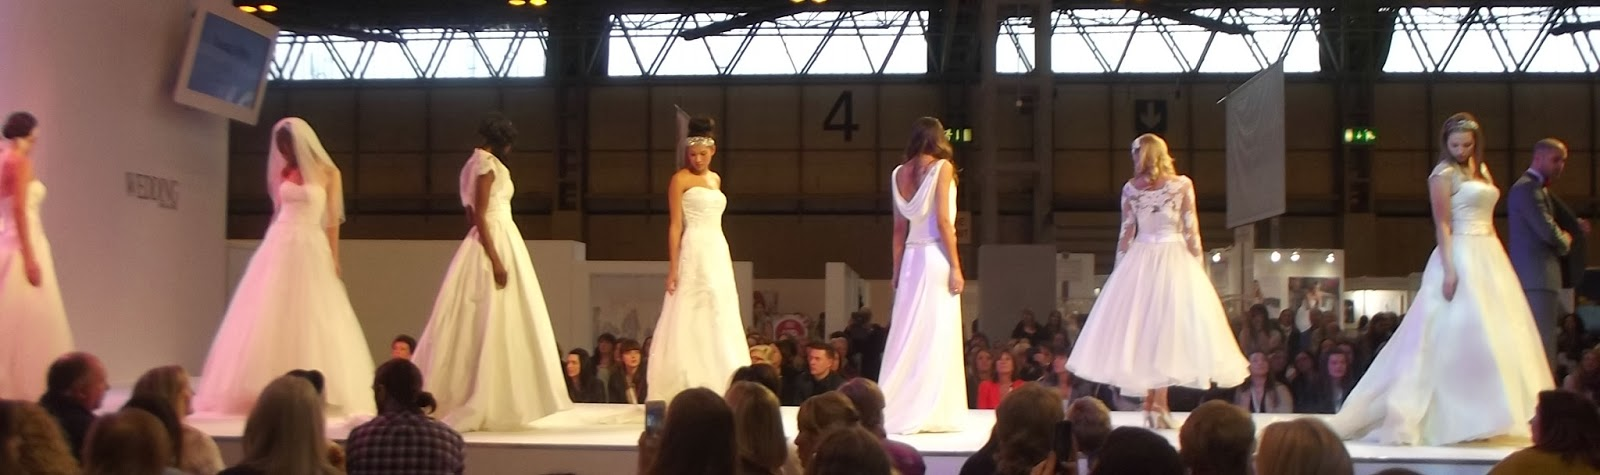 National Wedding Show NEC 2014 Catwalk